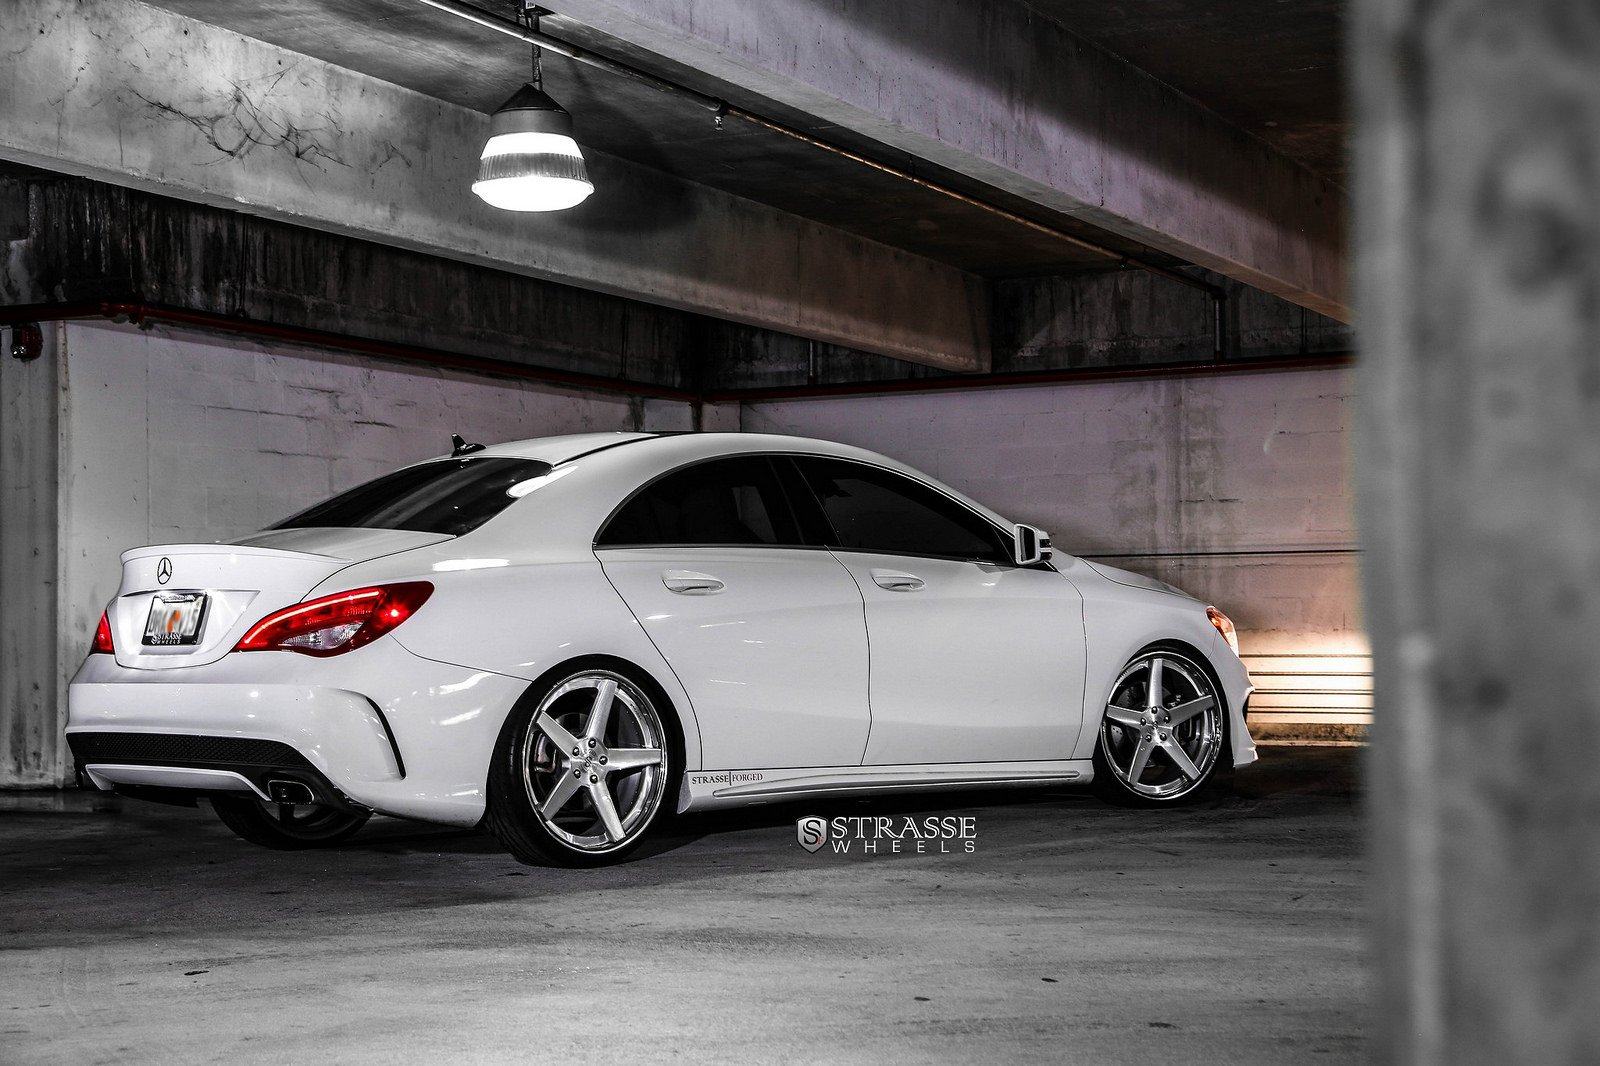 mercedes benz cla strasse wheels tuning white wallpaper 1600x1066 390093 wallpaperup. Black Bedroom Furniture Sets. Home Design Ideas